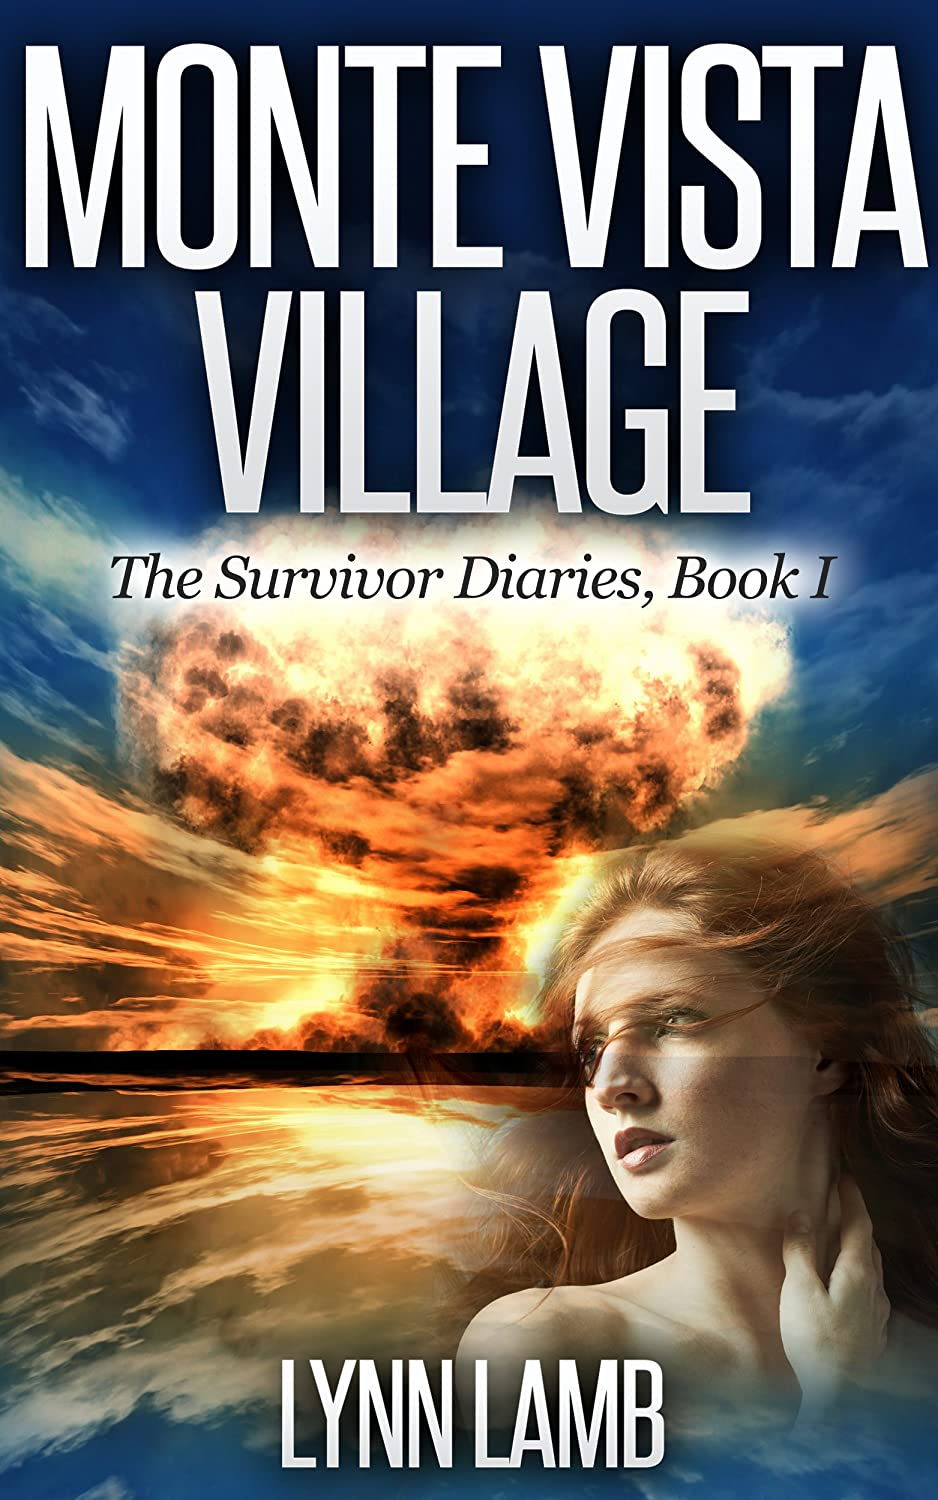 Trailer for Monte Vista Village (The Survivor Diaries, Book 1)